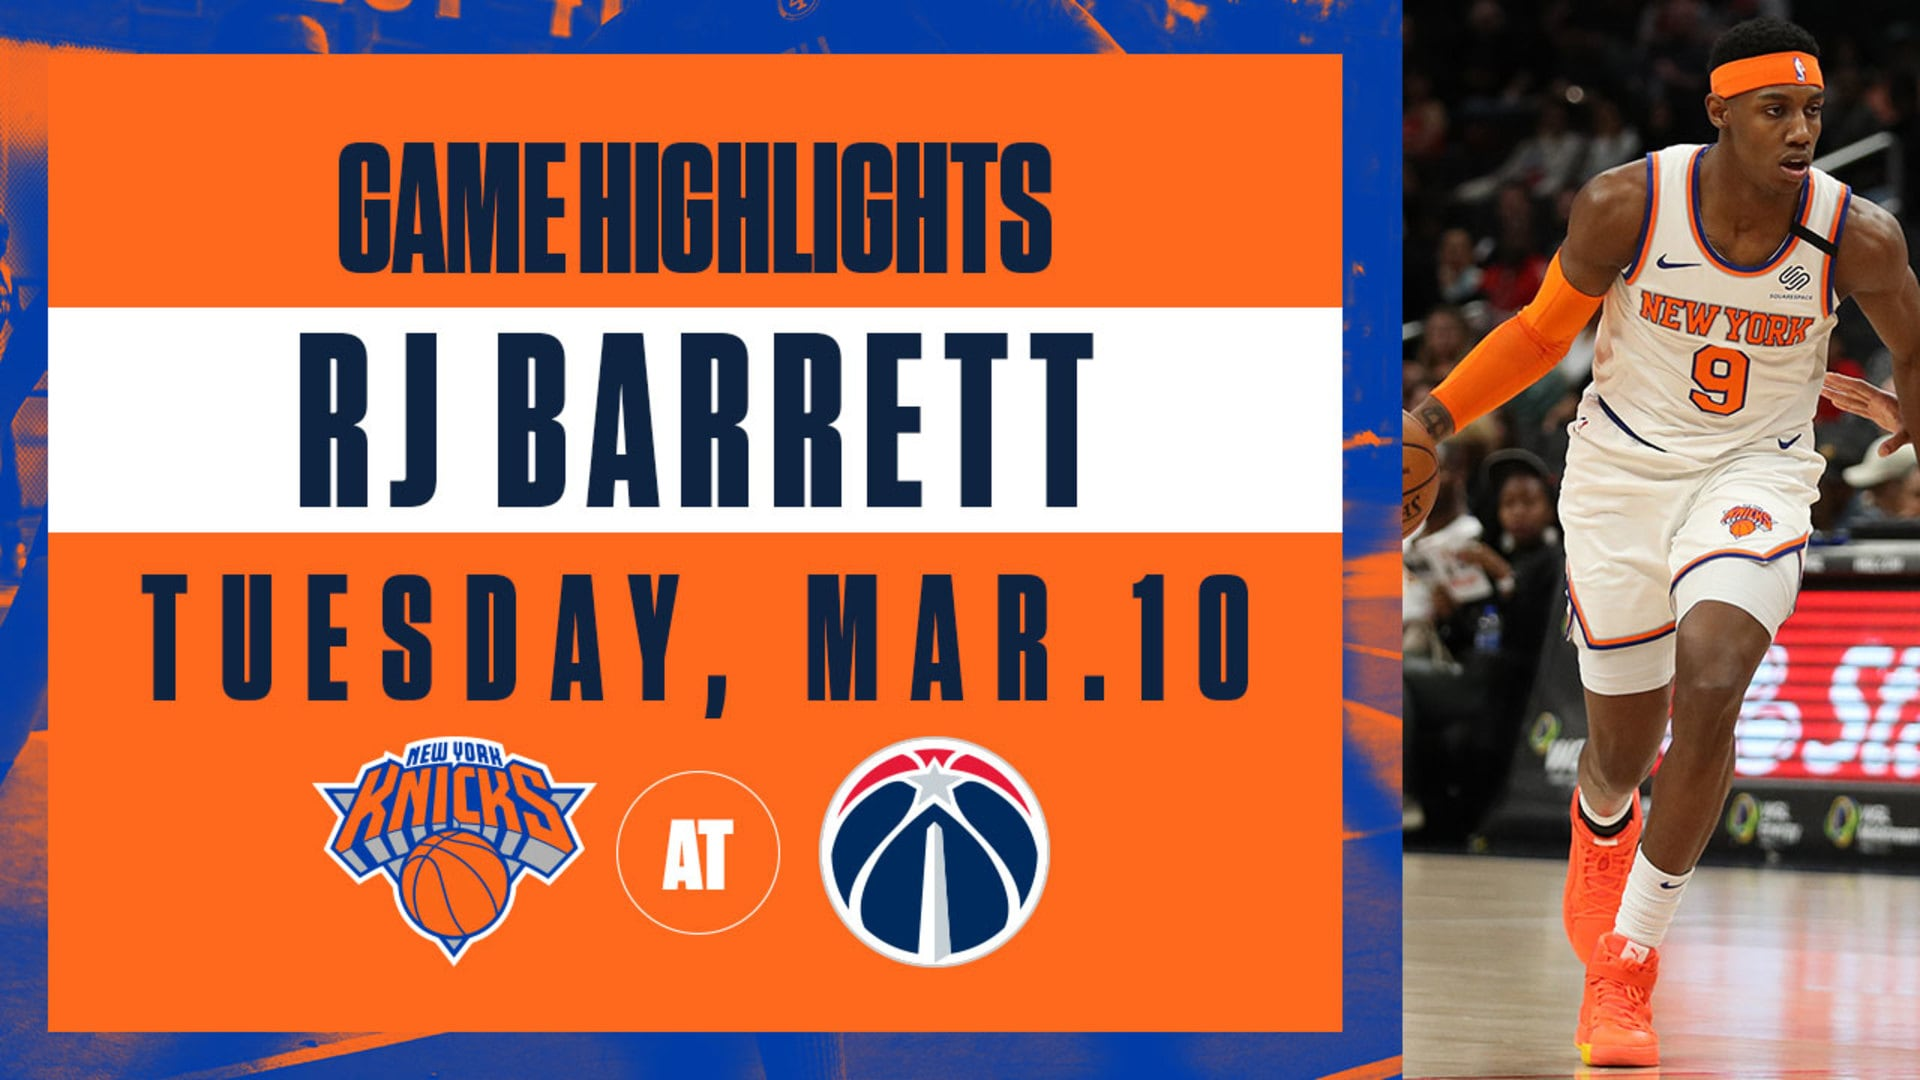 Highlights: RJ Barrett (16 Points) | Knicks @ Wizards